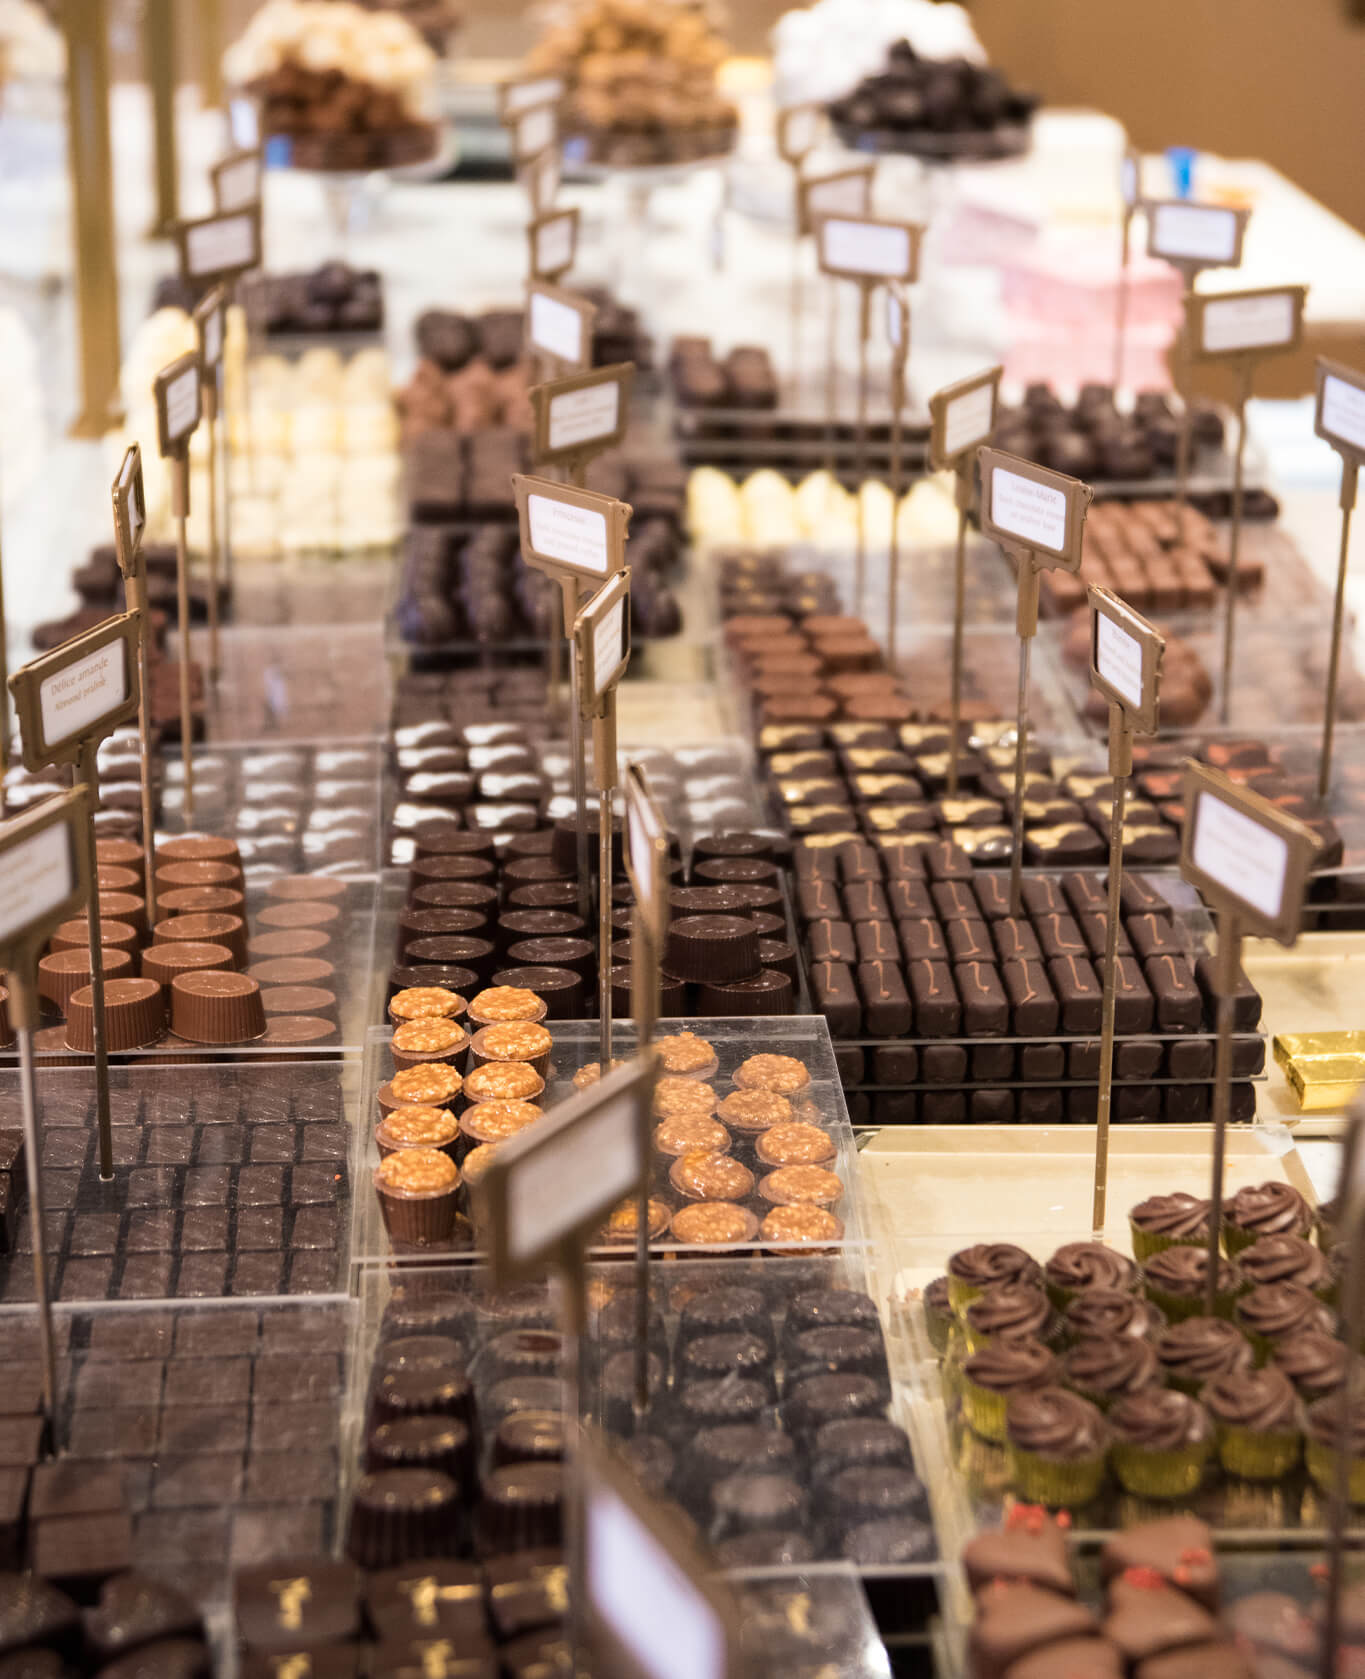 chocolates on display at a shop